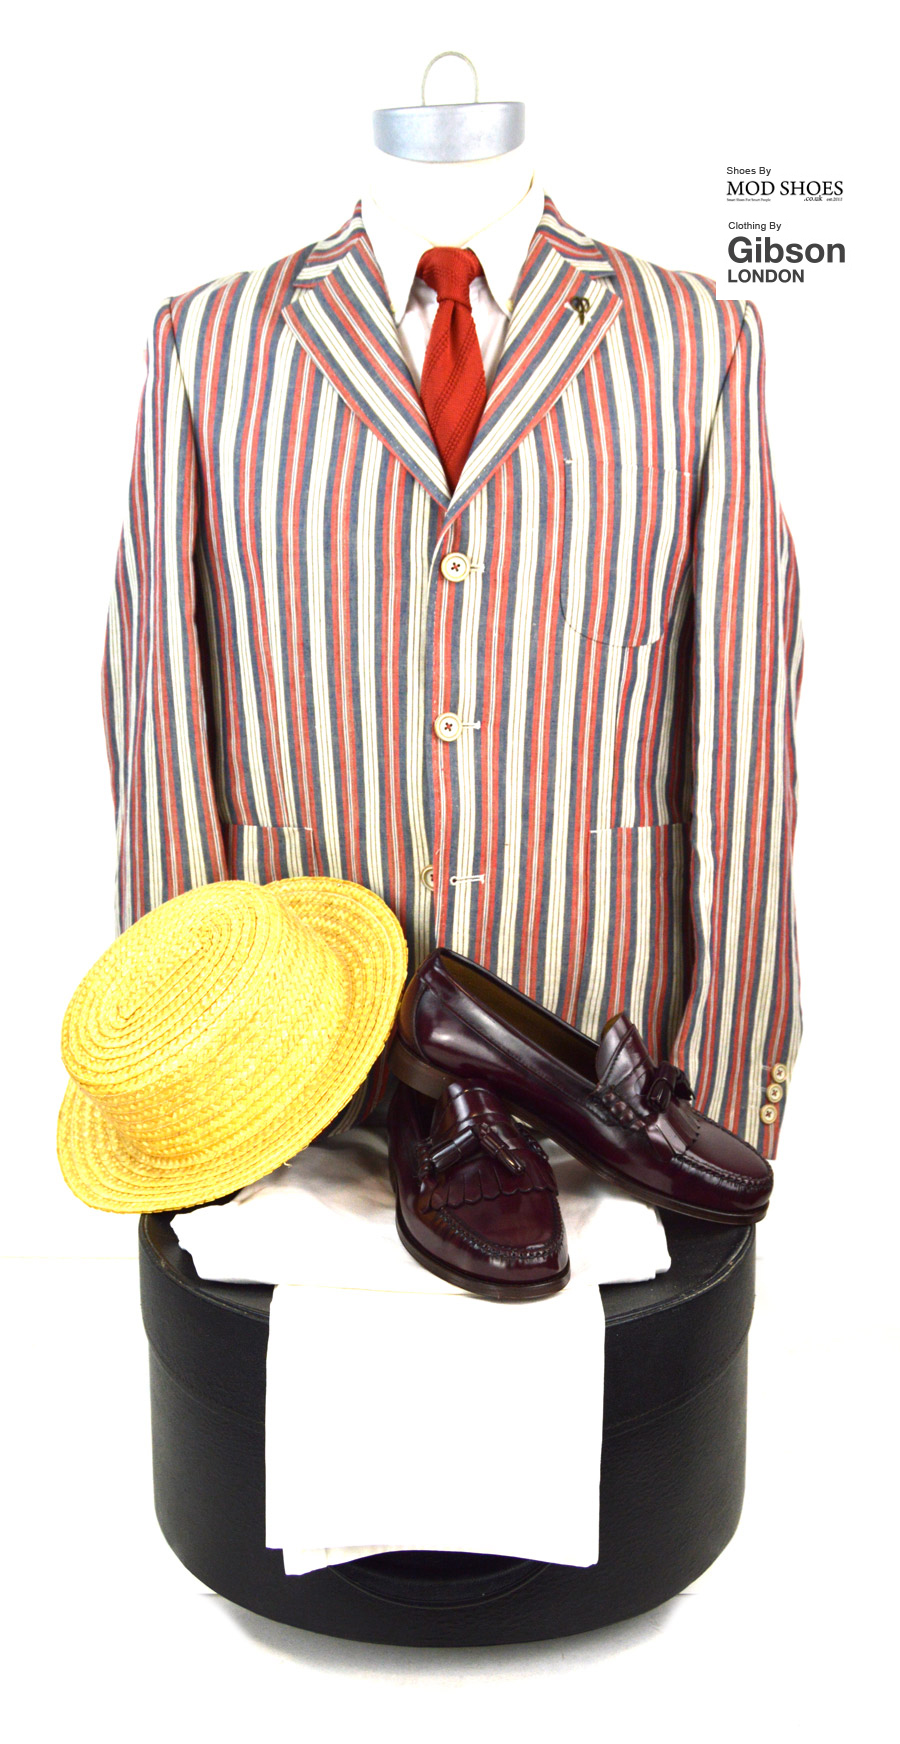 modshoes-oxblood-dukes-with-gibson-boating-blazer